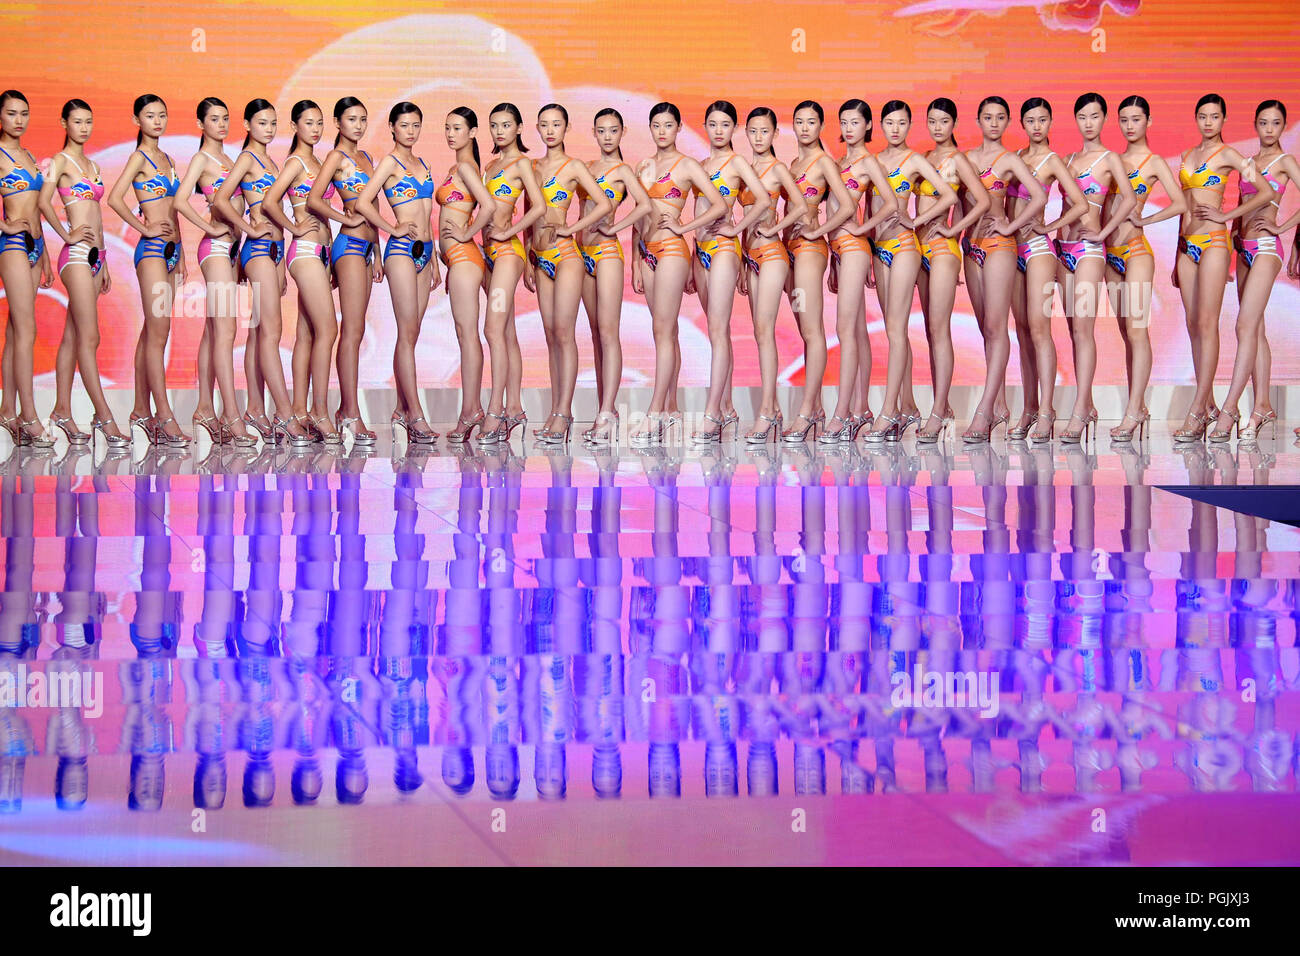 Qingdao, China's Shandong Province. 26th Aug, 2018. Contestants pose in the swimwear session during the 13th China Super Model Final Contest in Qingdao, east China's Shandong Province, Aug. 26, 2018. Credit: Li Ziheng/Xinhua/Alamy Live News - Stock Image